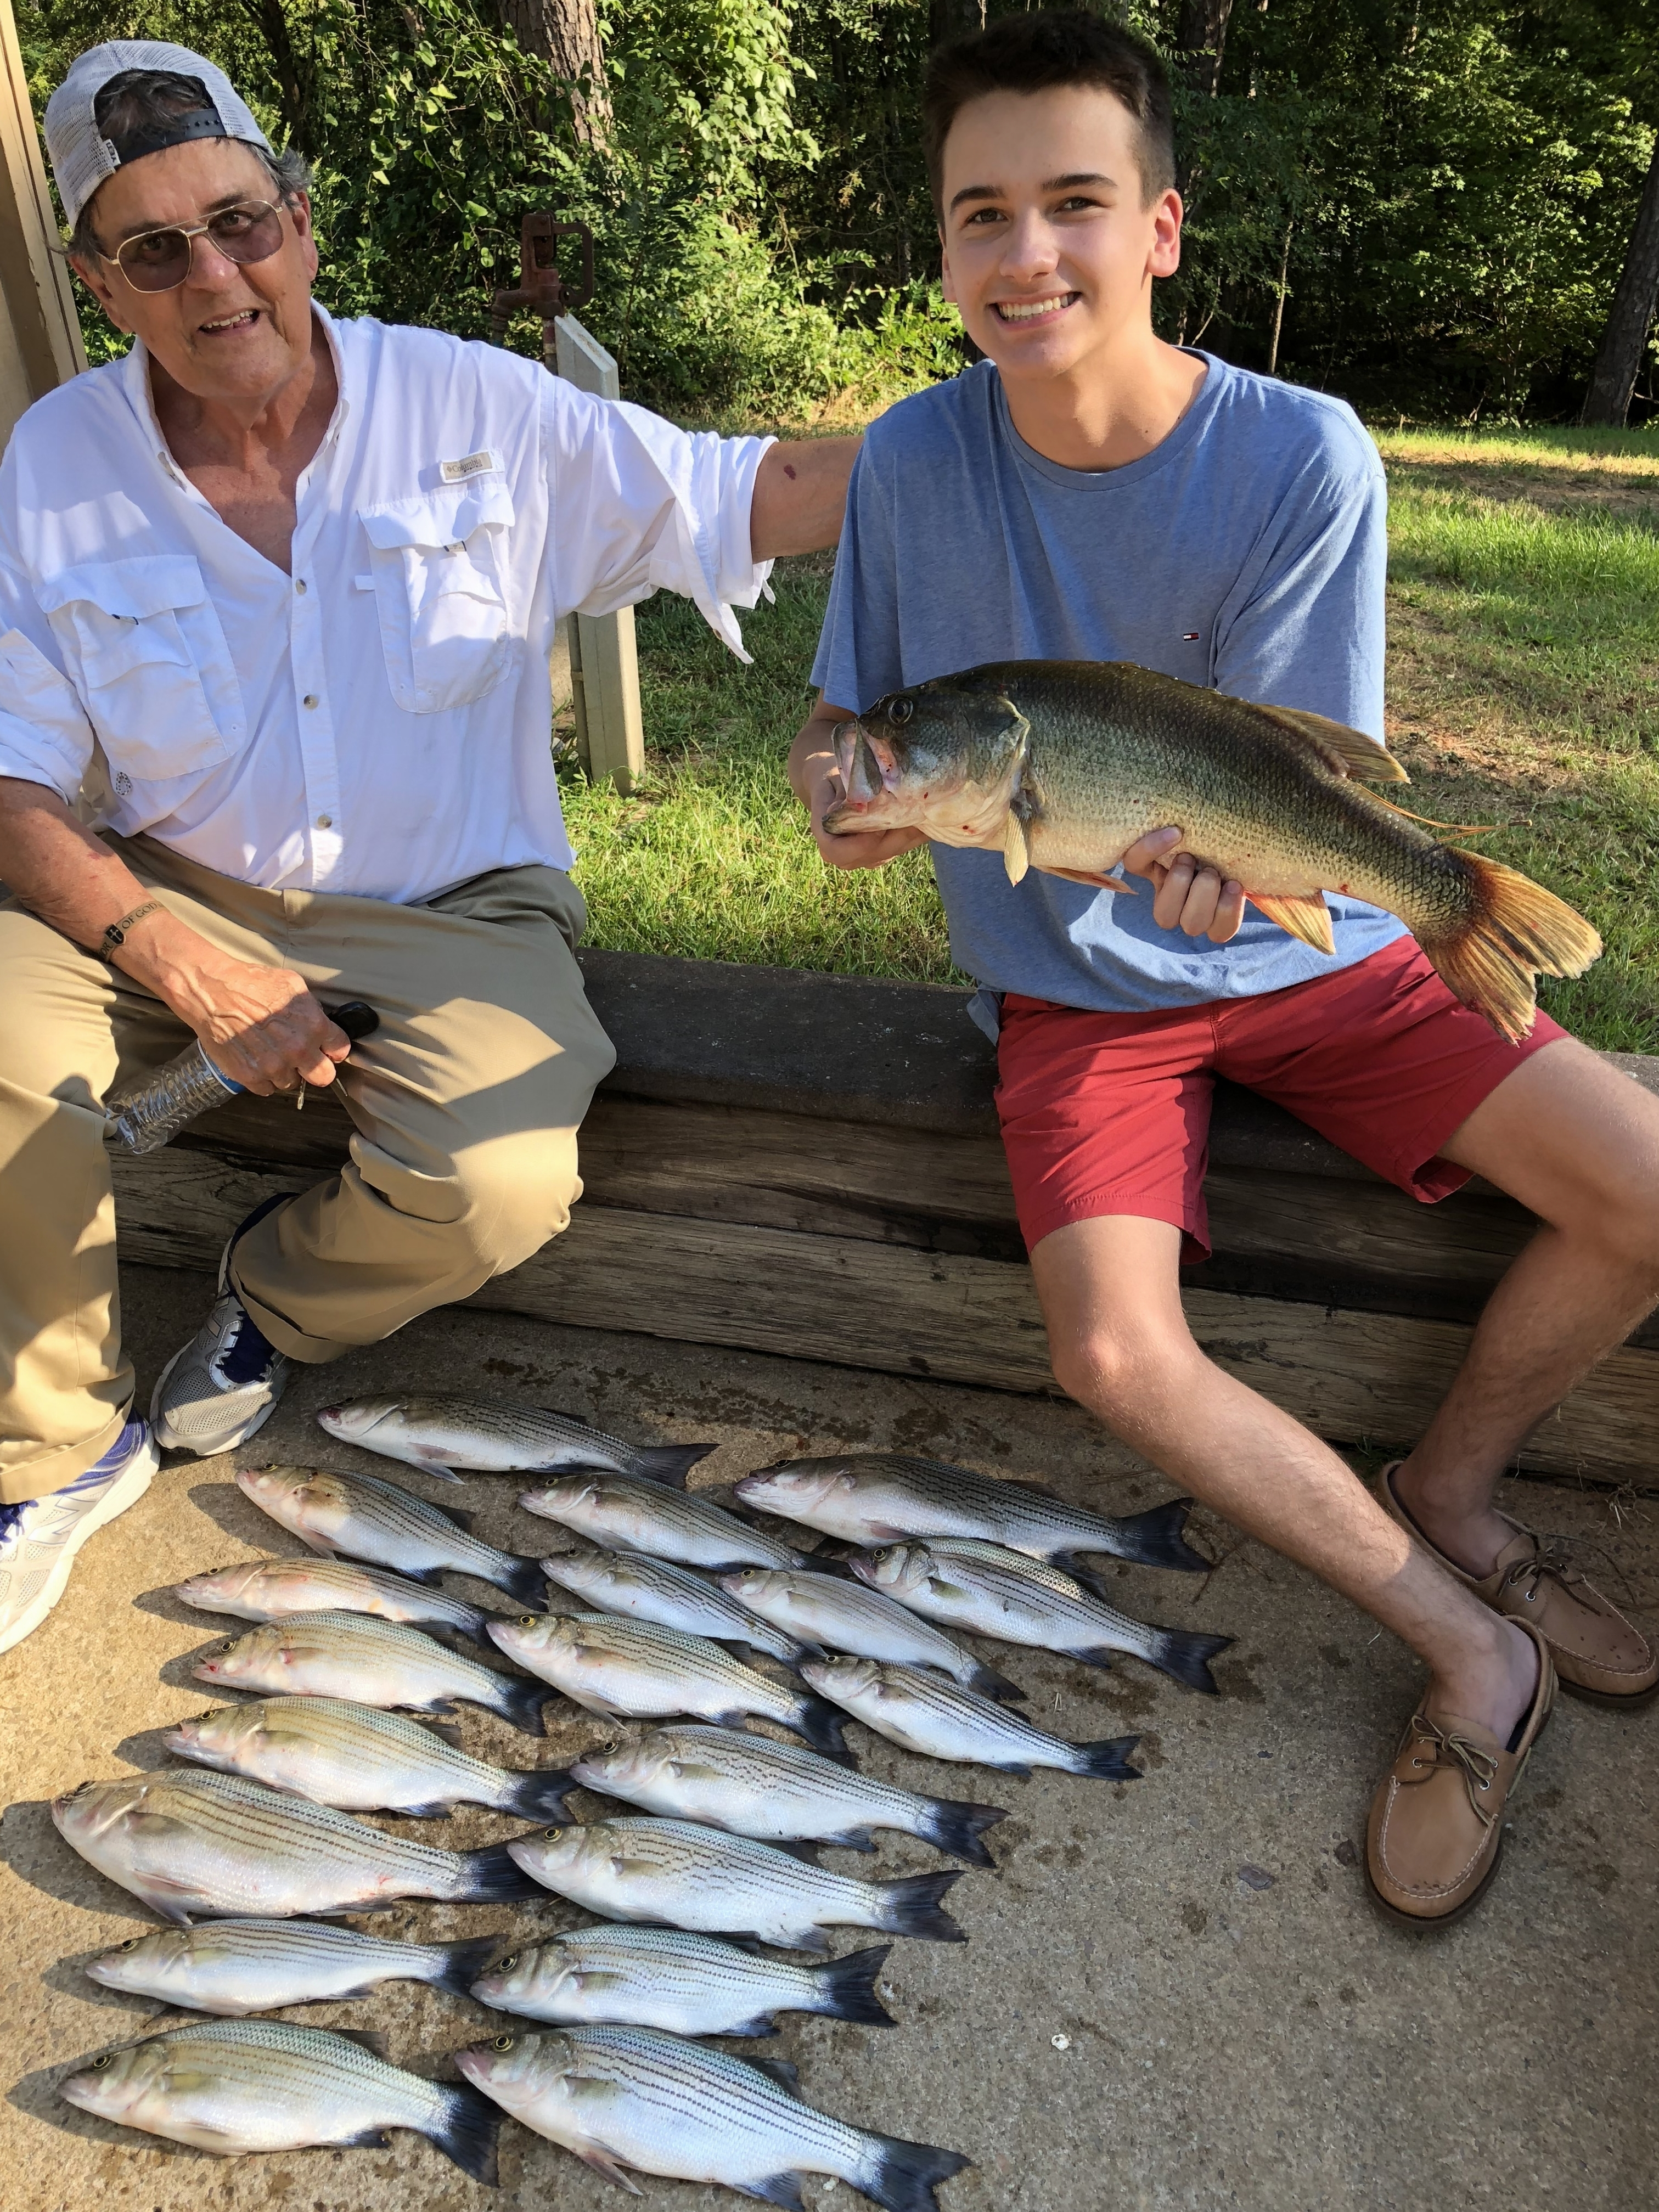 July 10, 2018Terry Williams from Eavns with his Grandson Chase Roberts from Winchester Va. and their catch of the day.IMG_2254